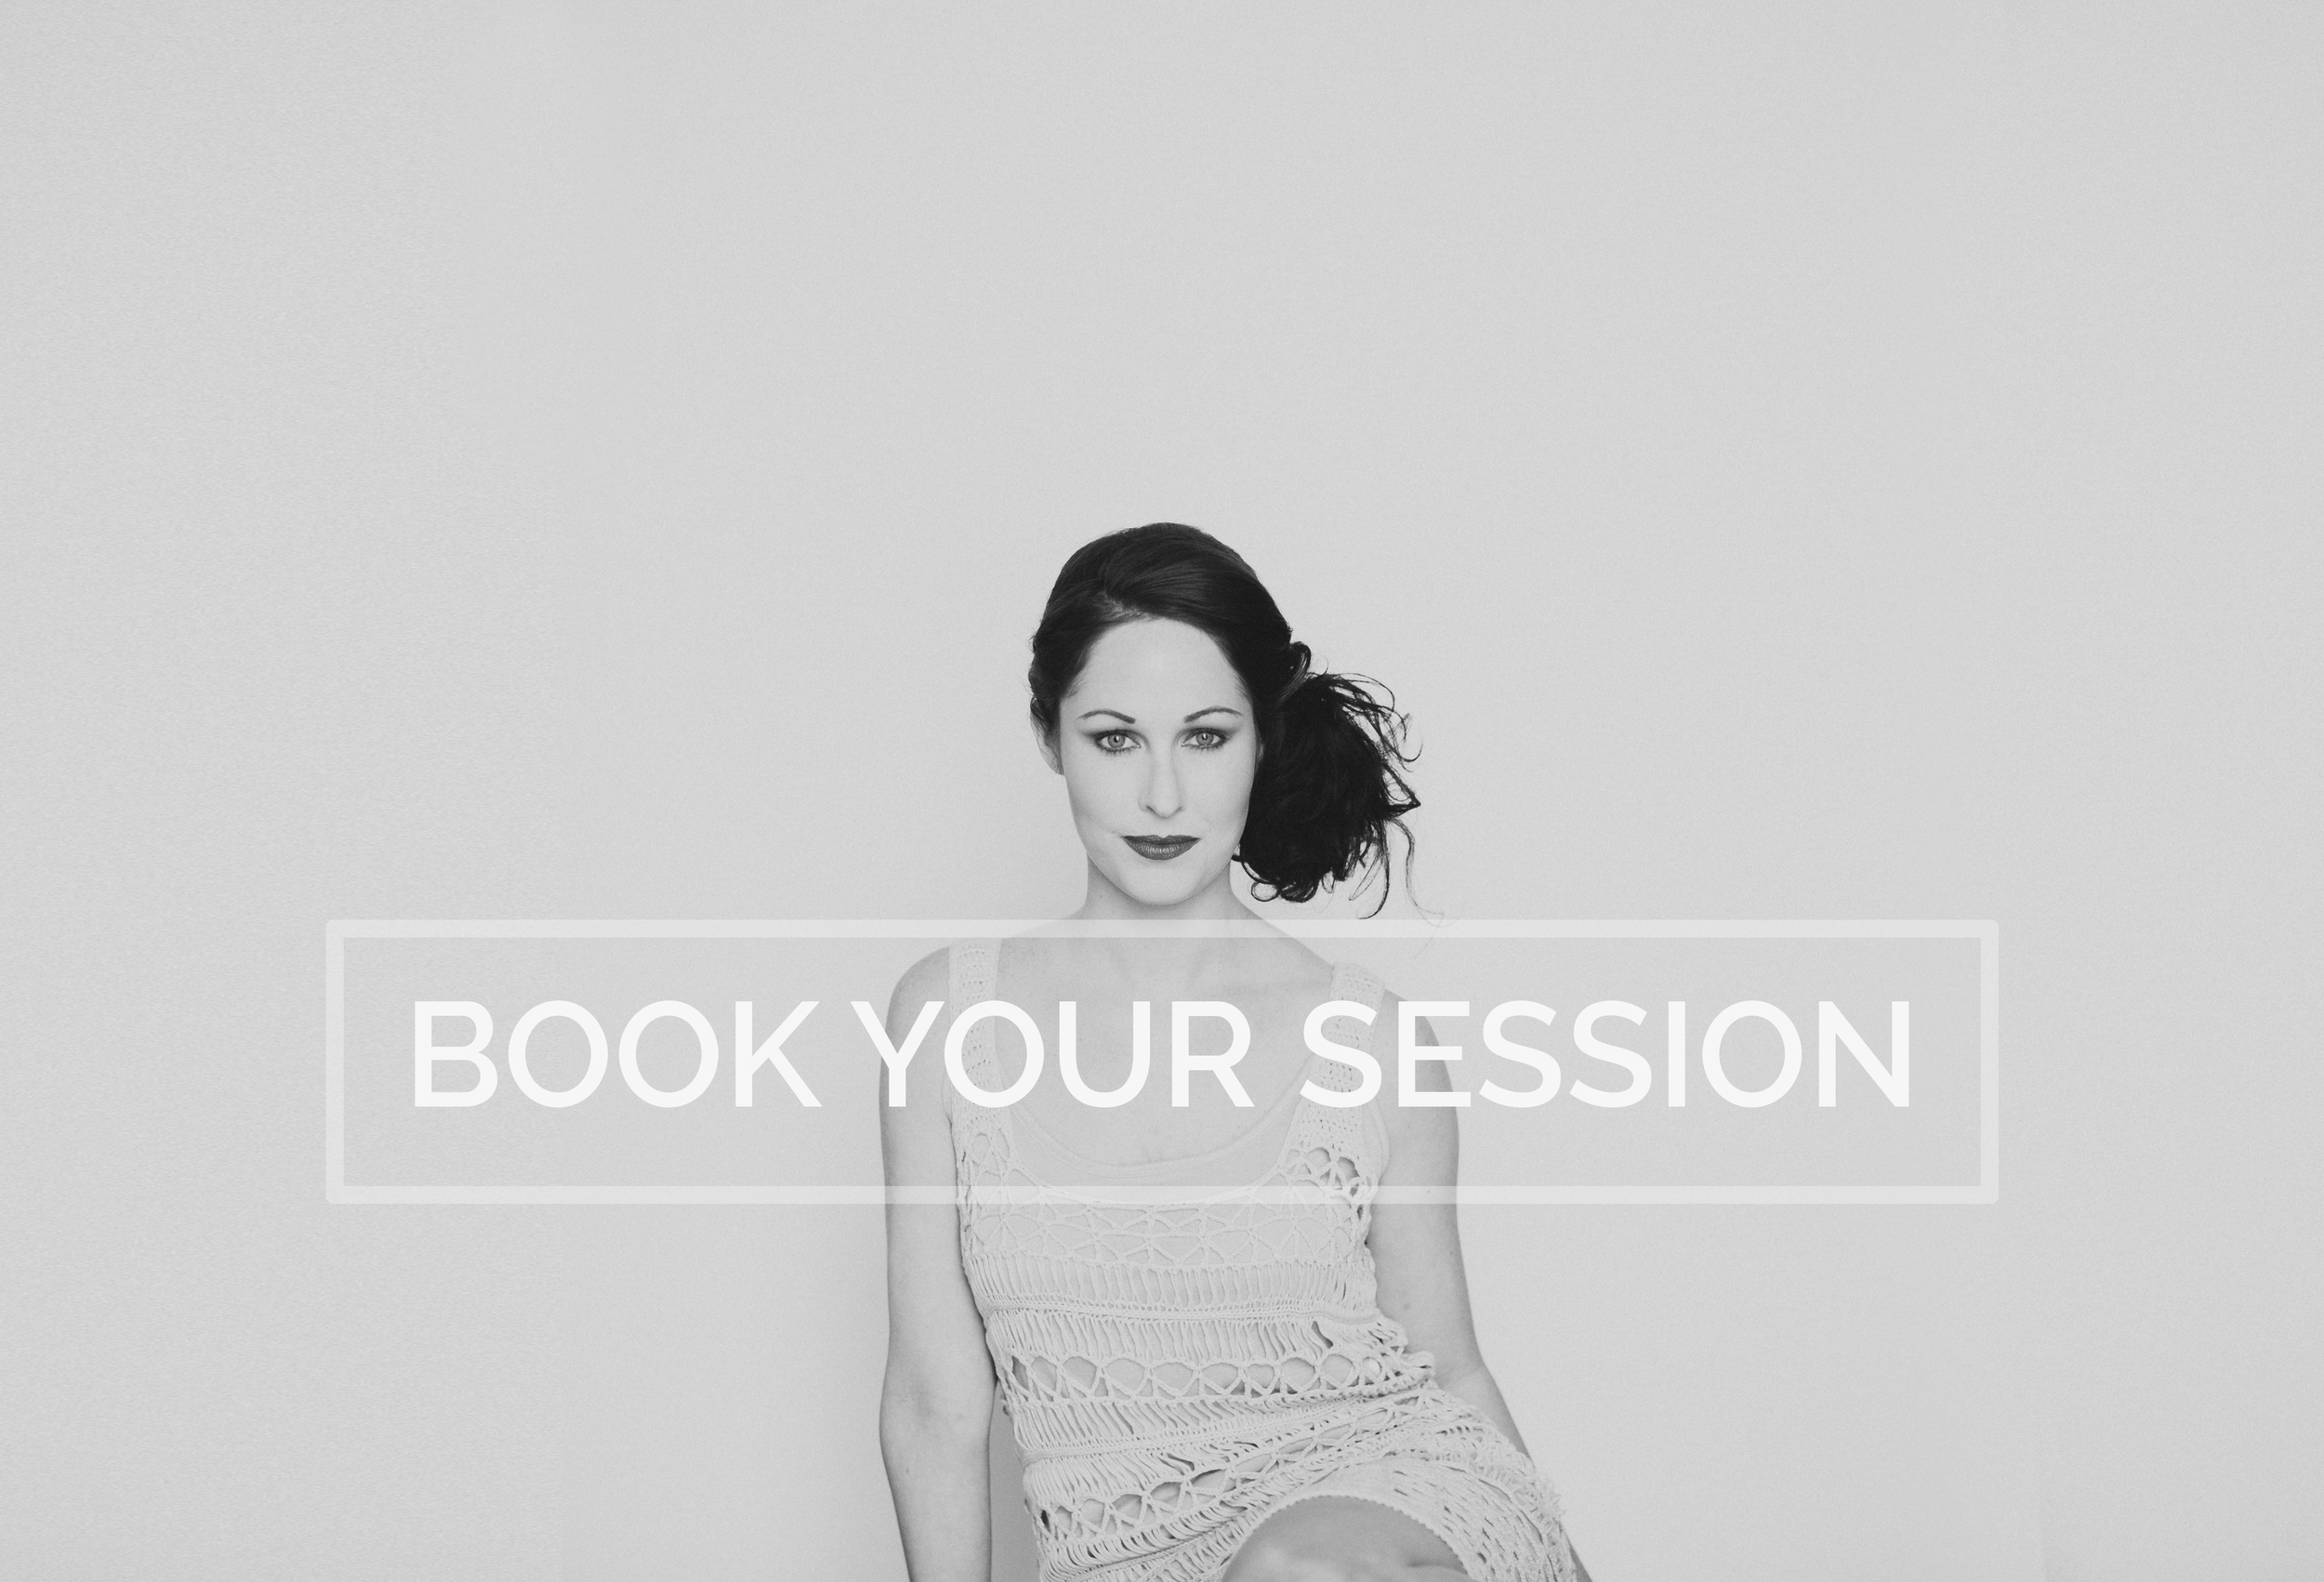 From the moment you book your session to thedelevery of your images, I will be there every step of the way.